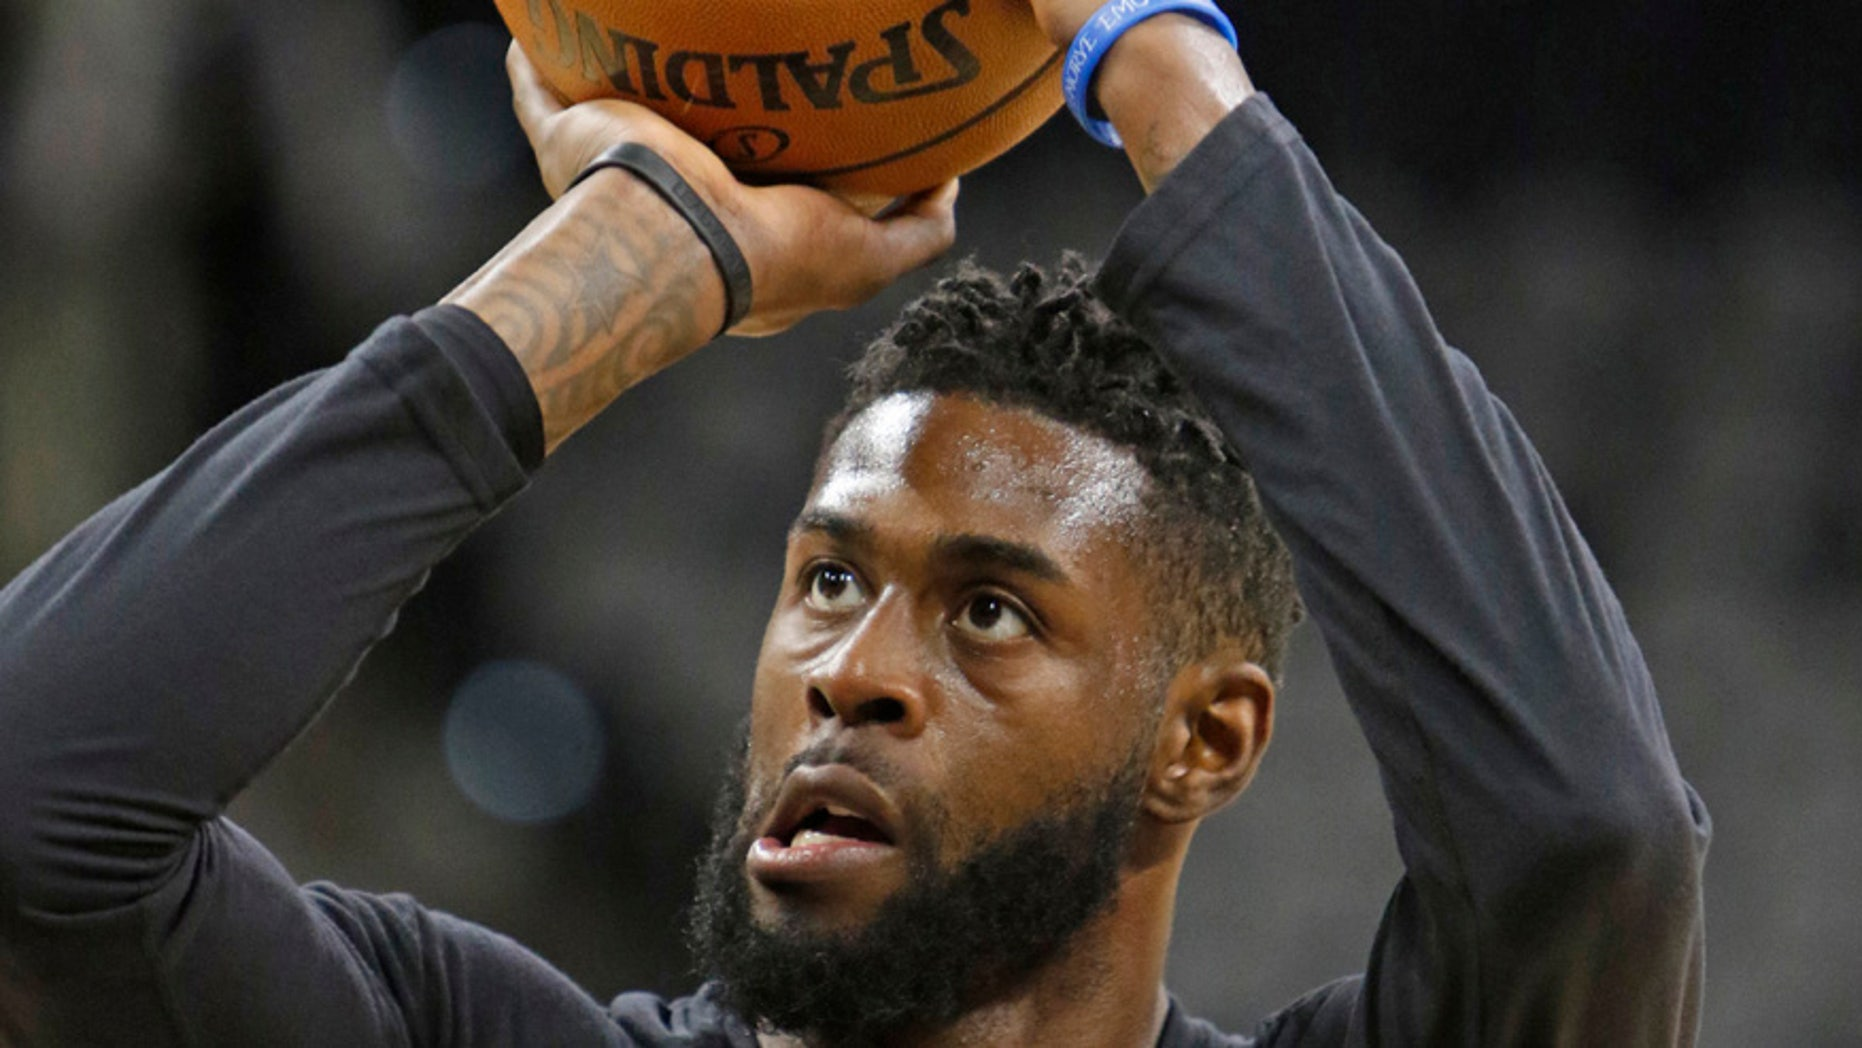 Basketball player Willie Reed.